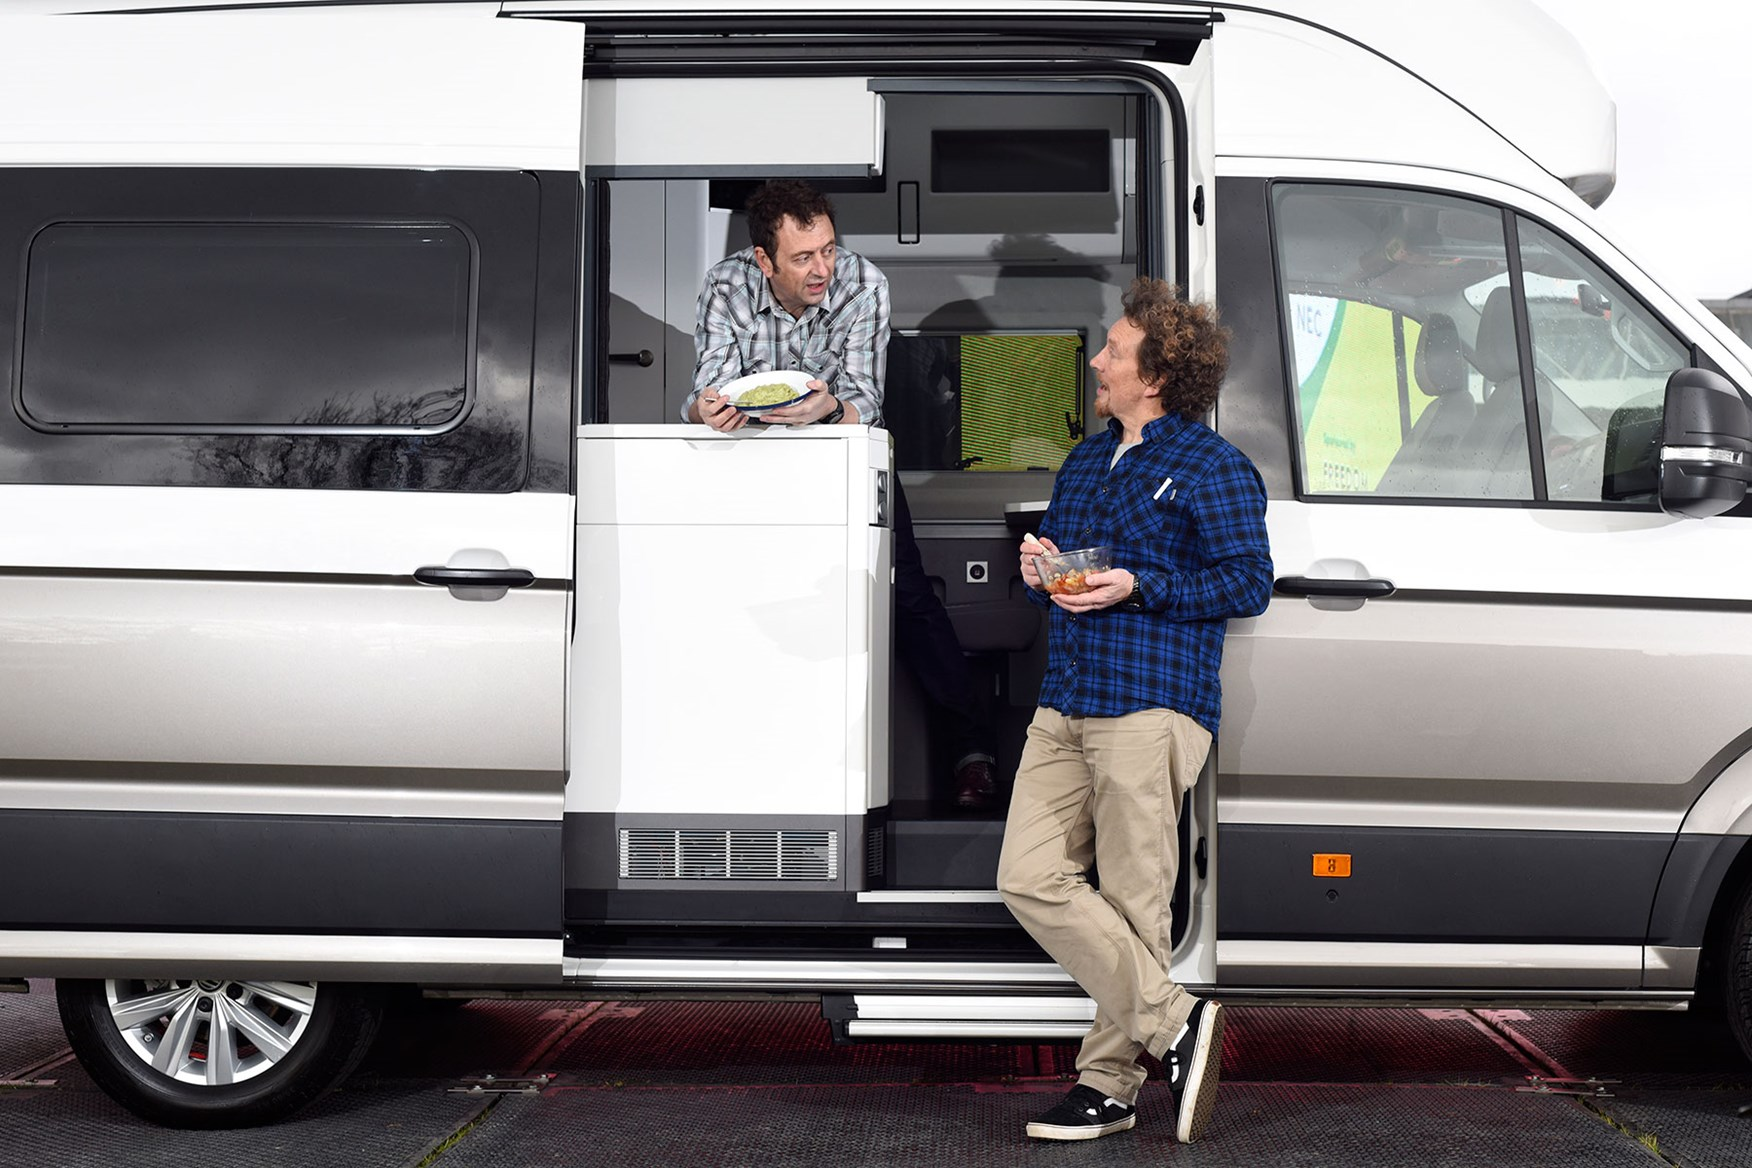 9a958b758c ... VW Grand California campervan makes UK debut at CCM Show 2019 with  Martin Dorey and Matt Allwright - side view VW Grand California 600 ...